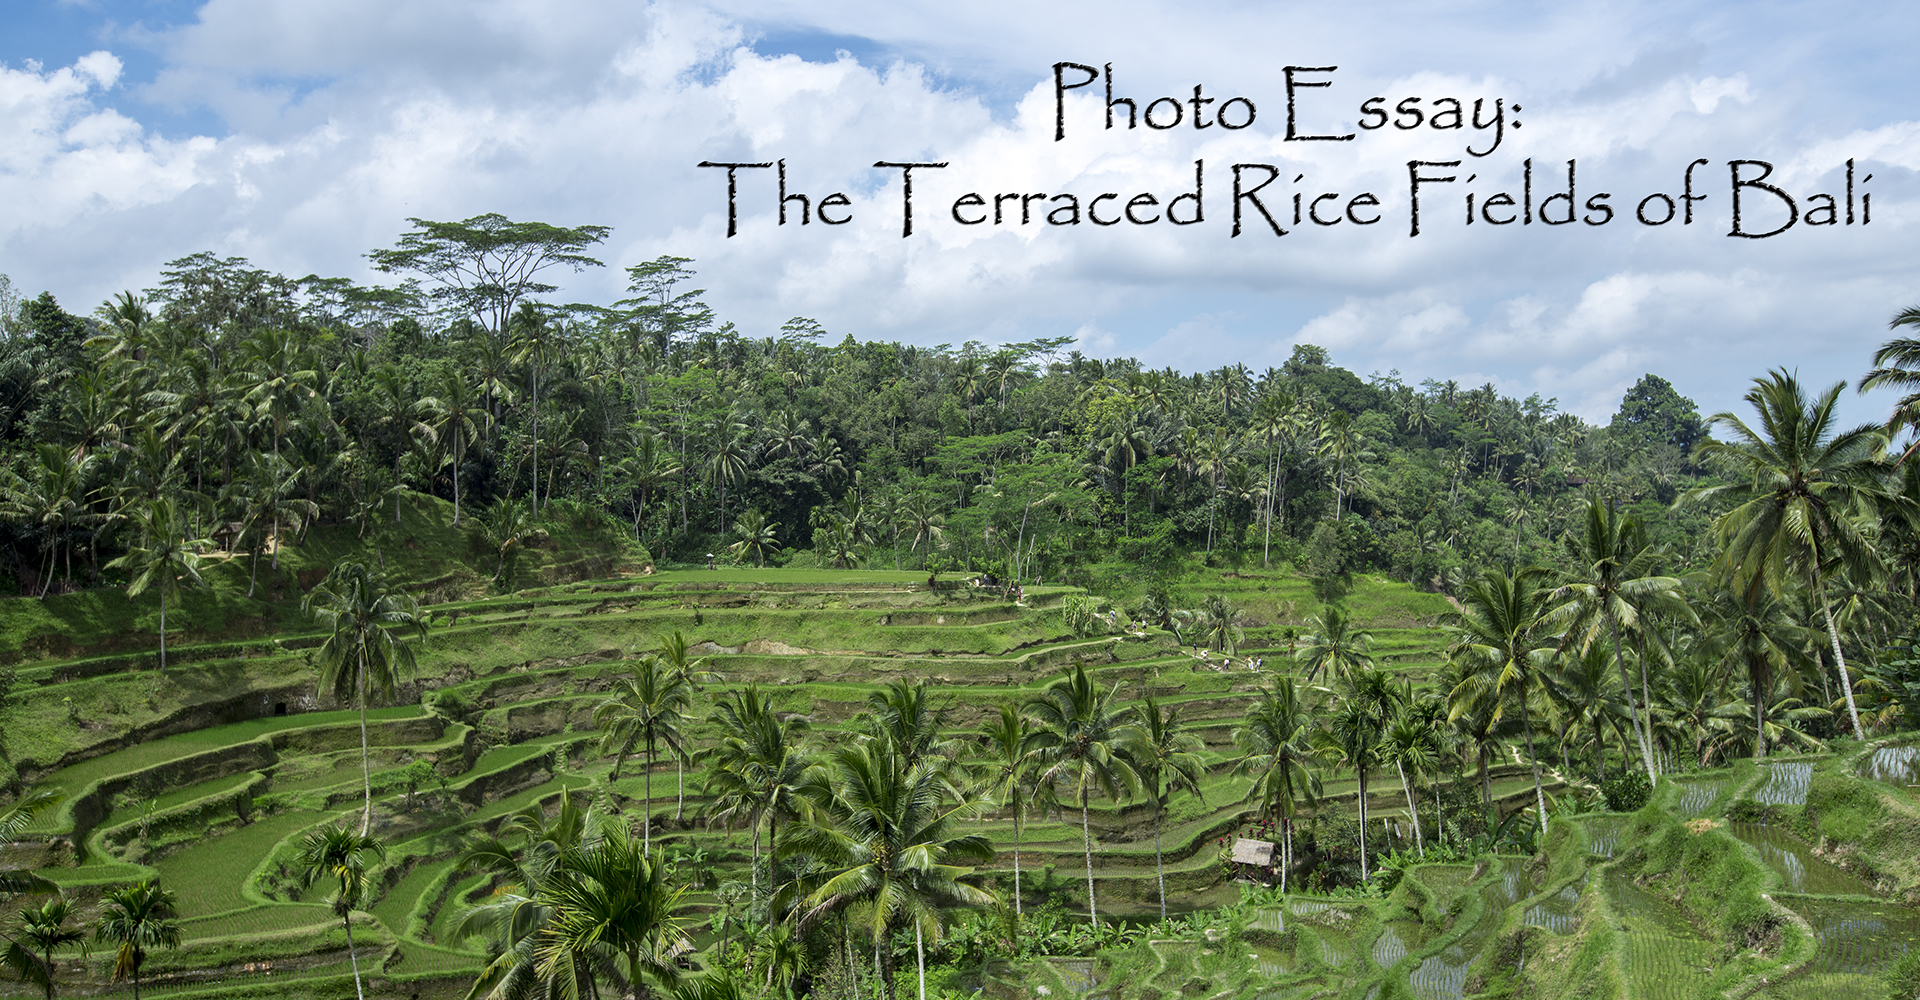 rice essay photo essay the terraced rice fields of bali photo essay the terraced rice fields of bali